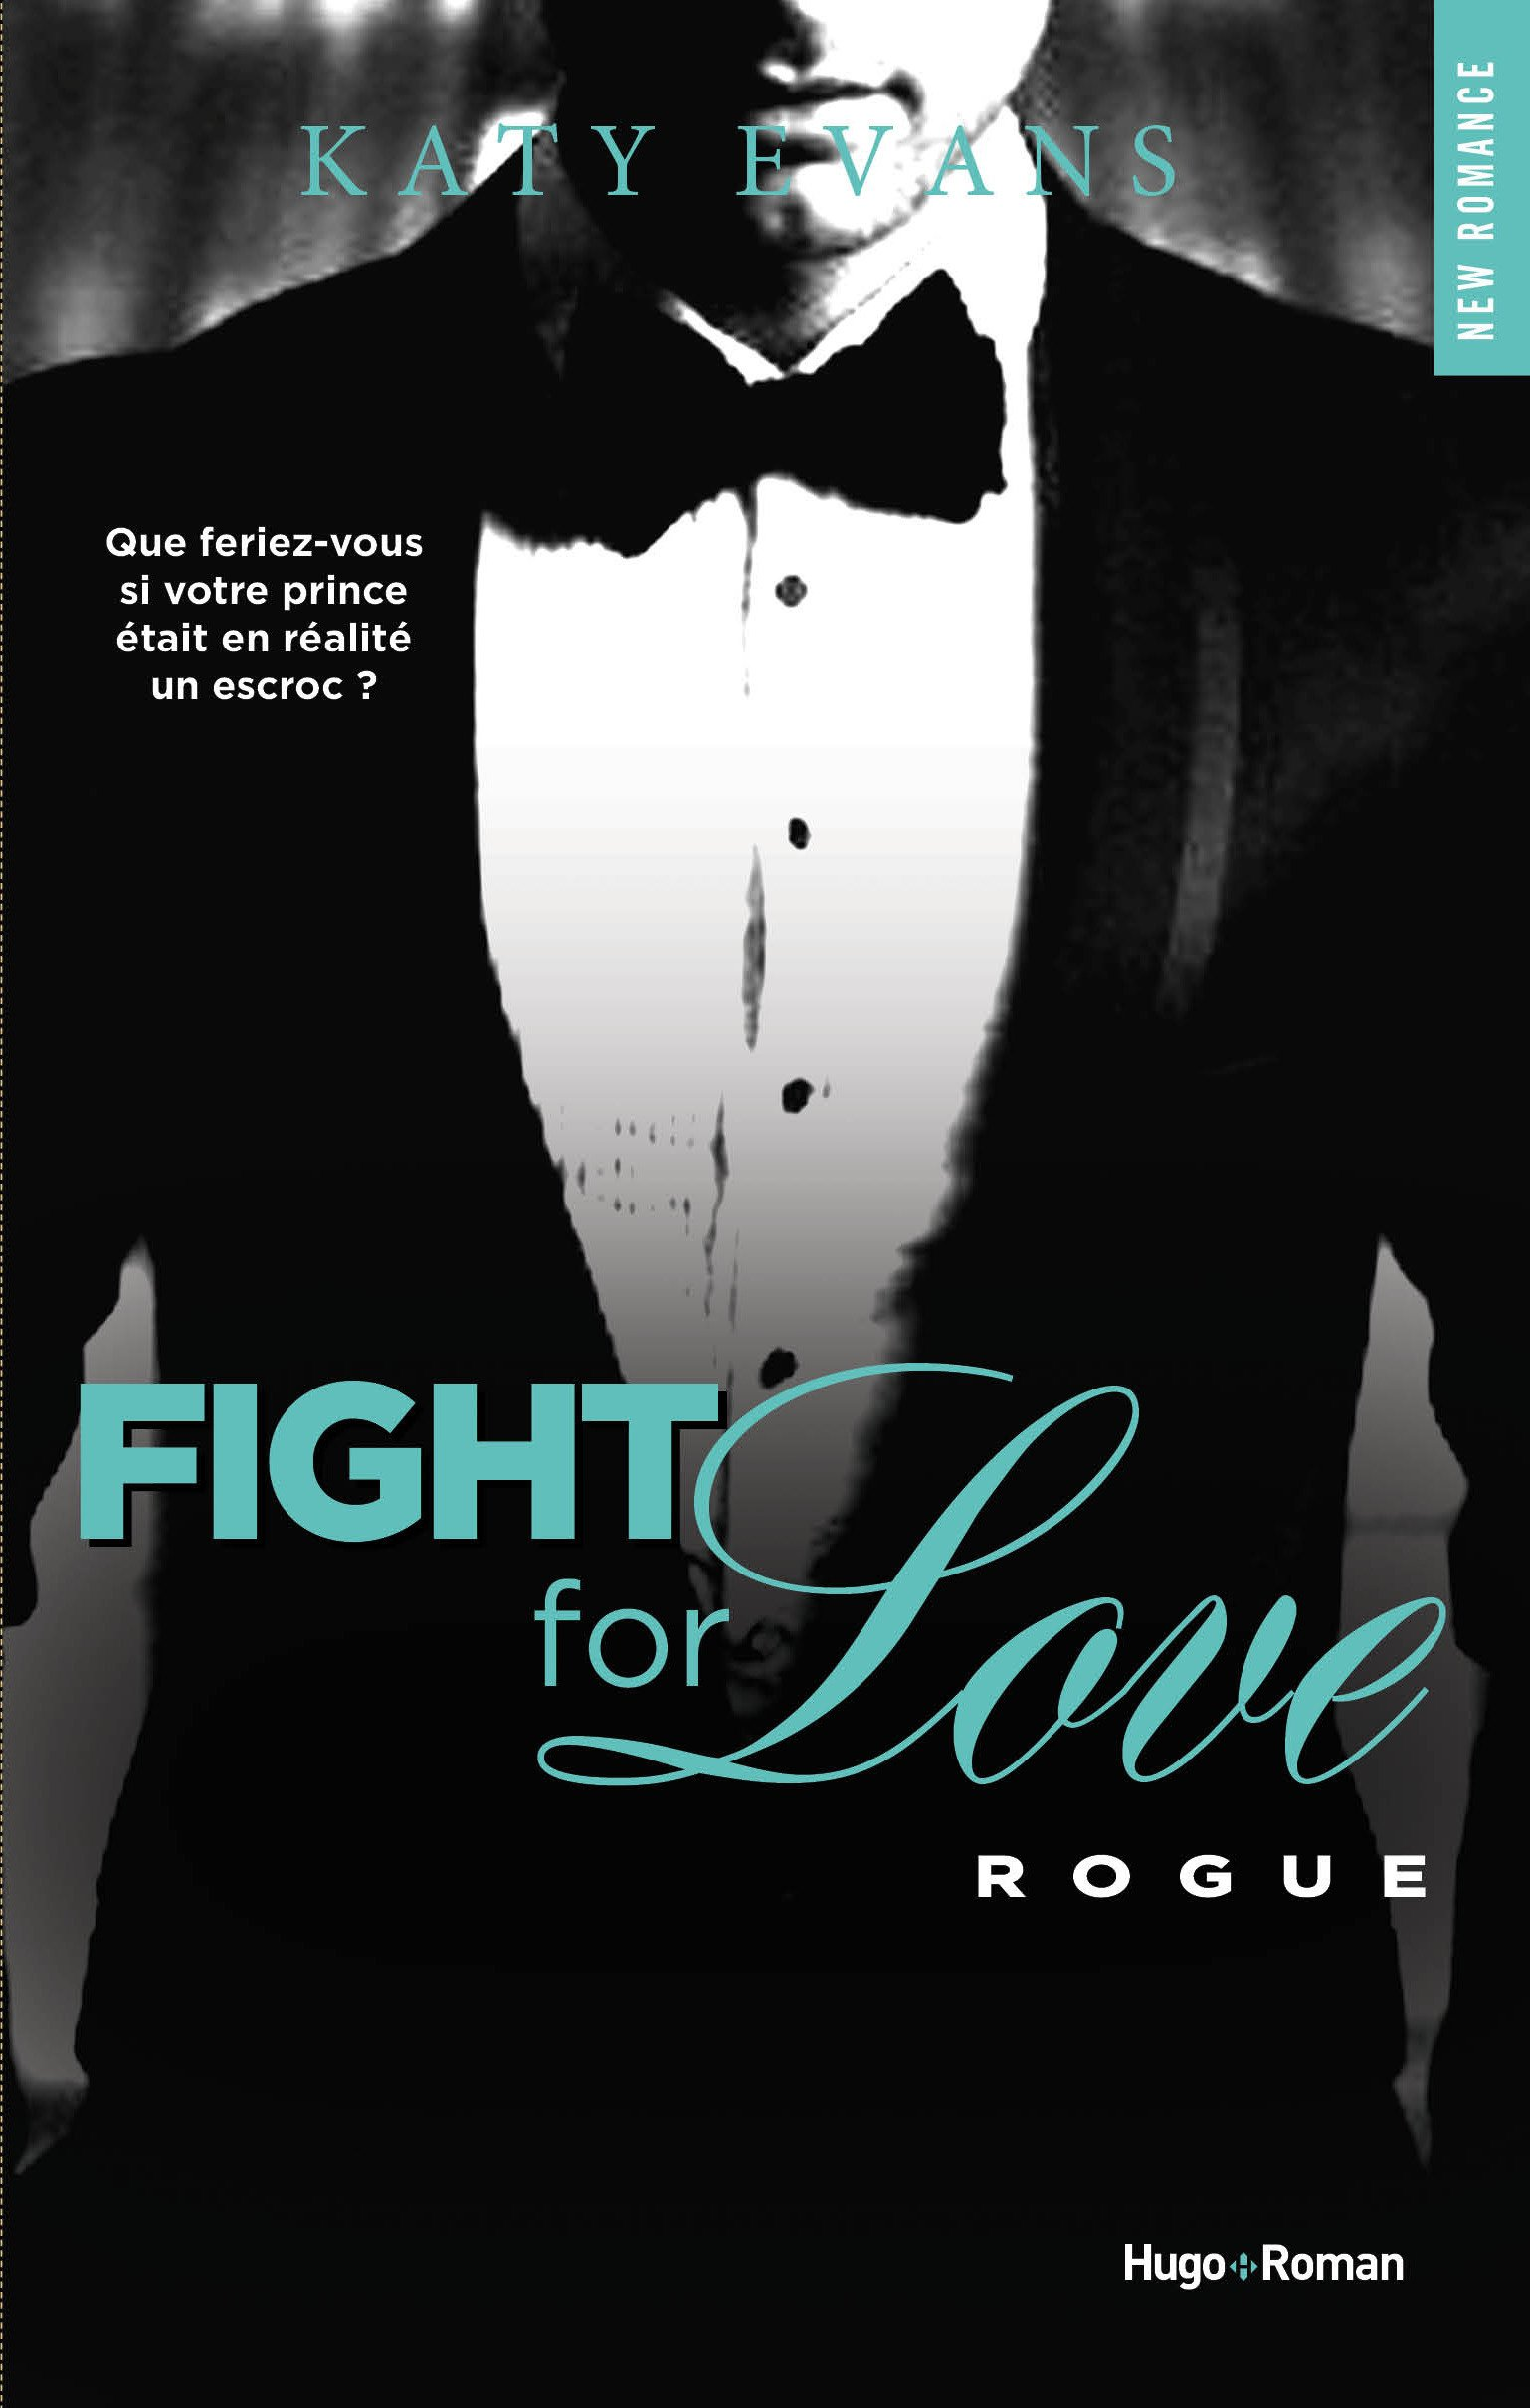 http://queenofreading1605.blogspot.be/2015/05/fight-for-love-tome-4-rogue-de-katy.html